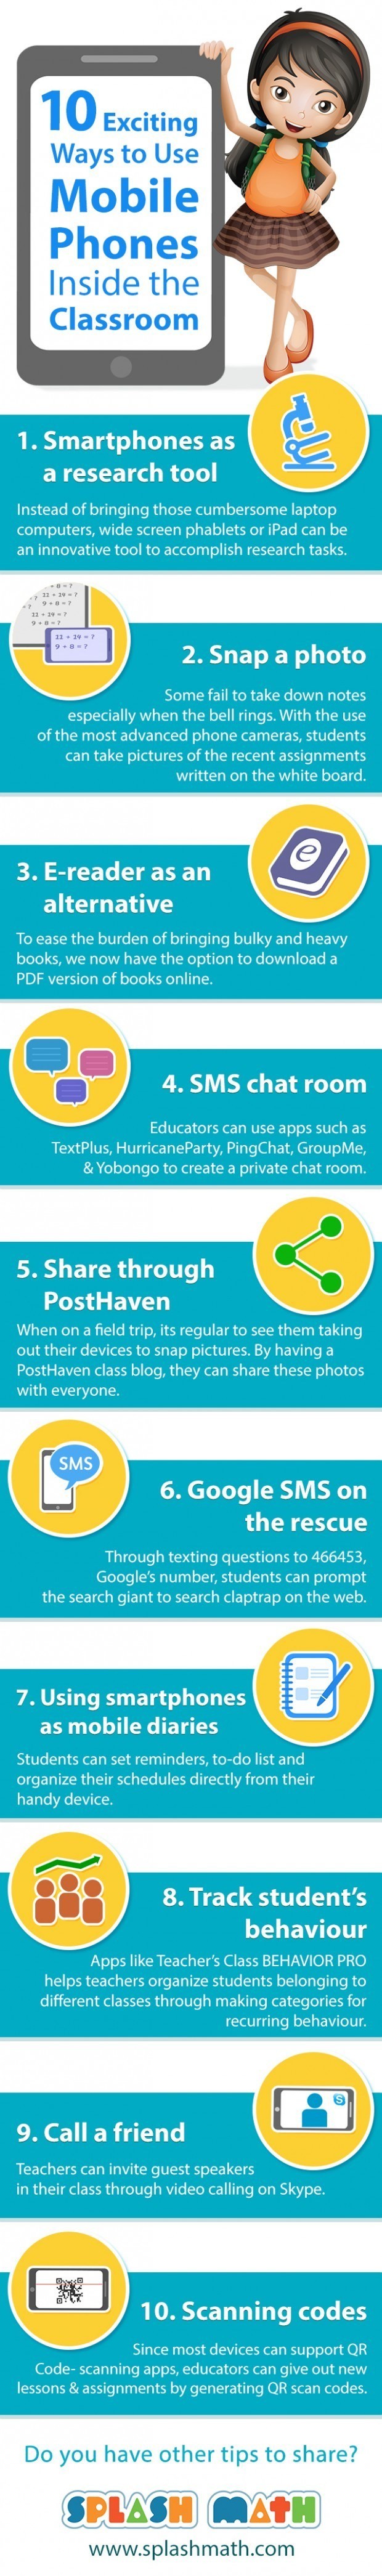 10-Exciting-Ways-to-Use-Mobile-Phones-Inside-the-Classroom-Infographic